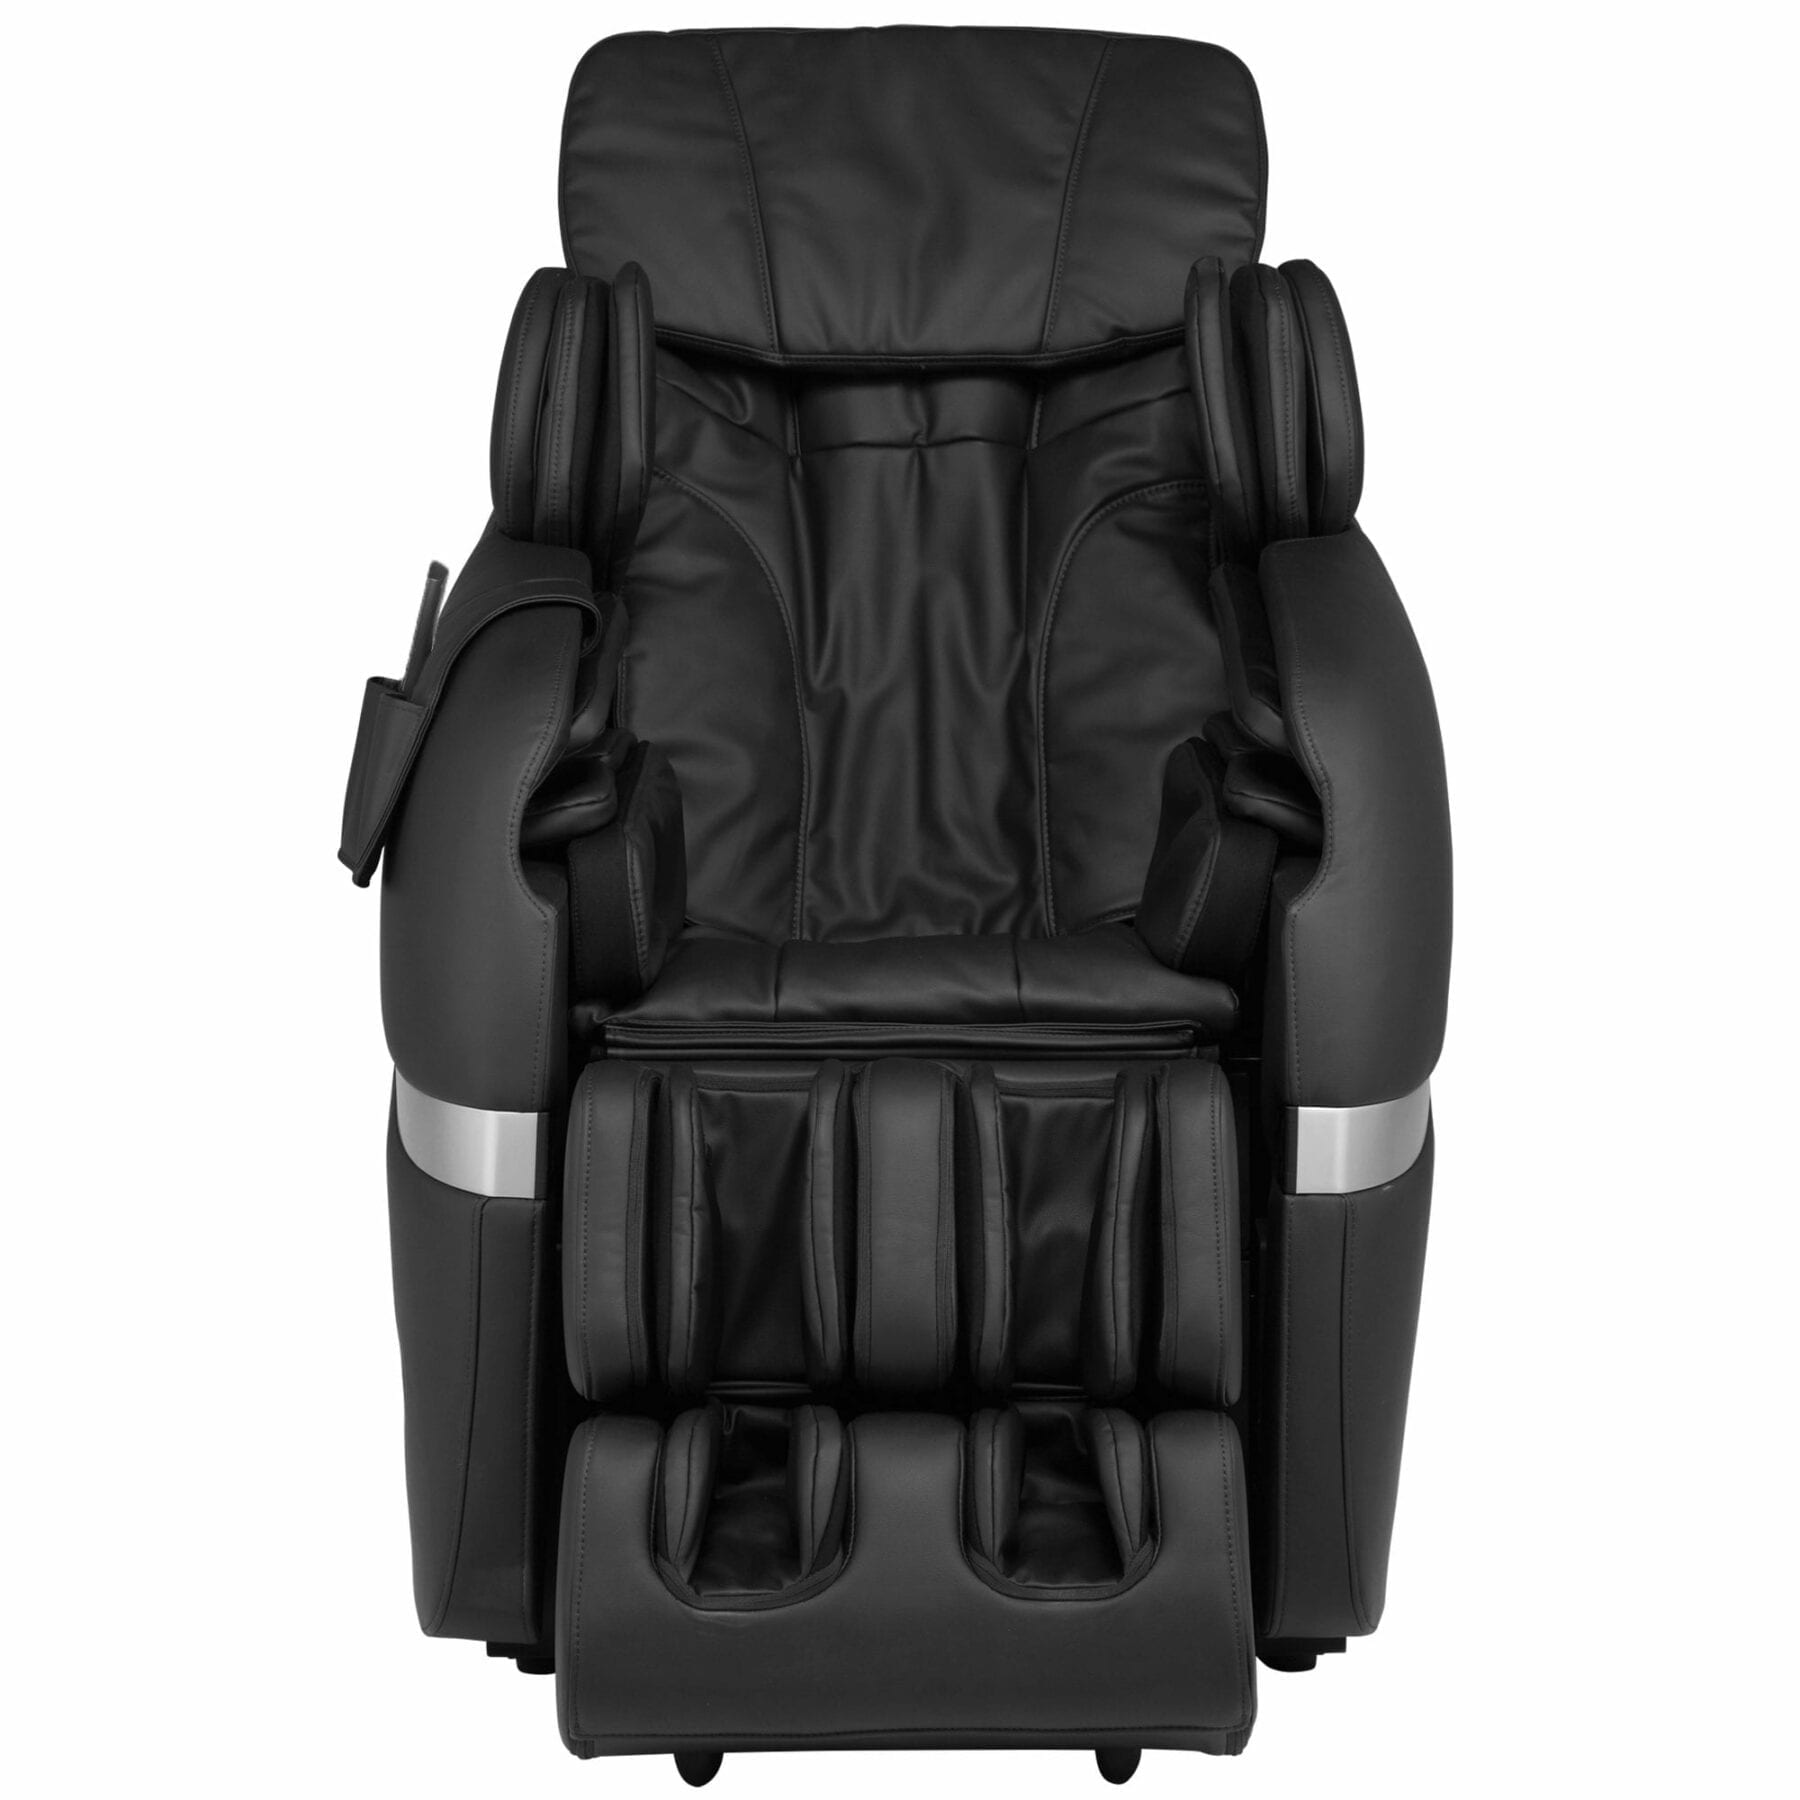 The Brio Massage Chair The Ultimate In Relaxation at The World s